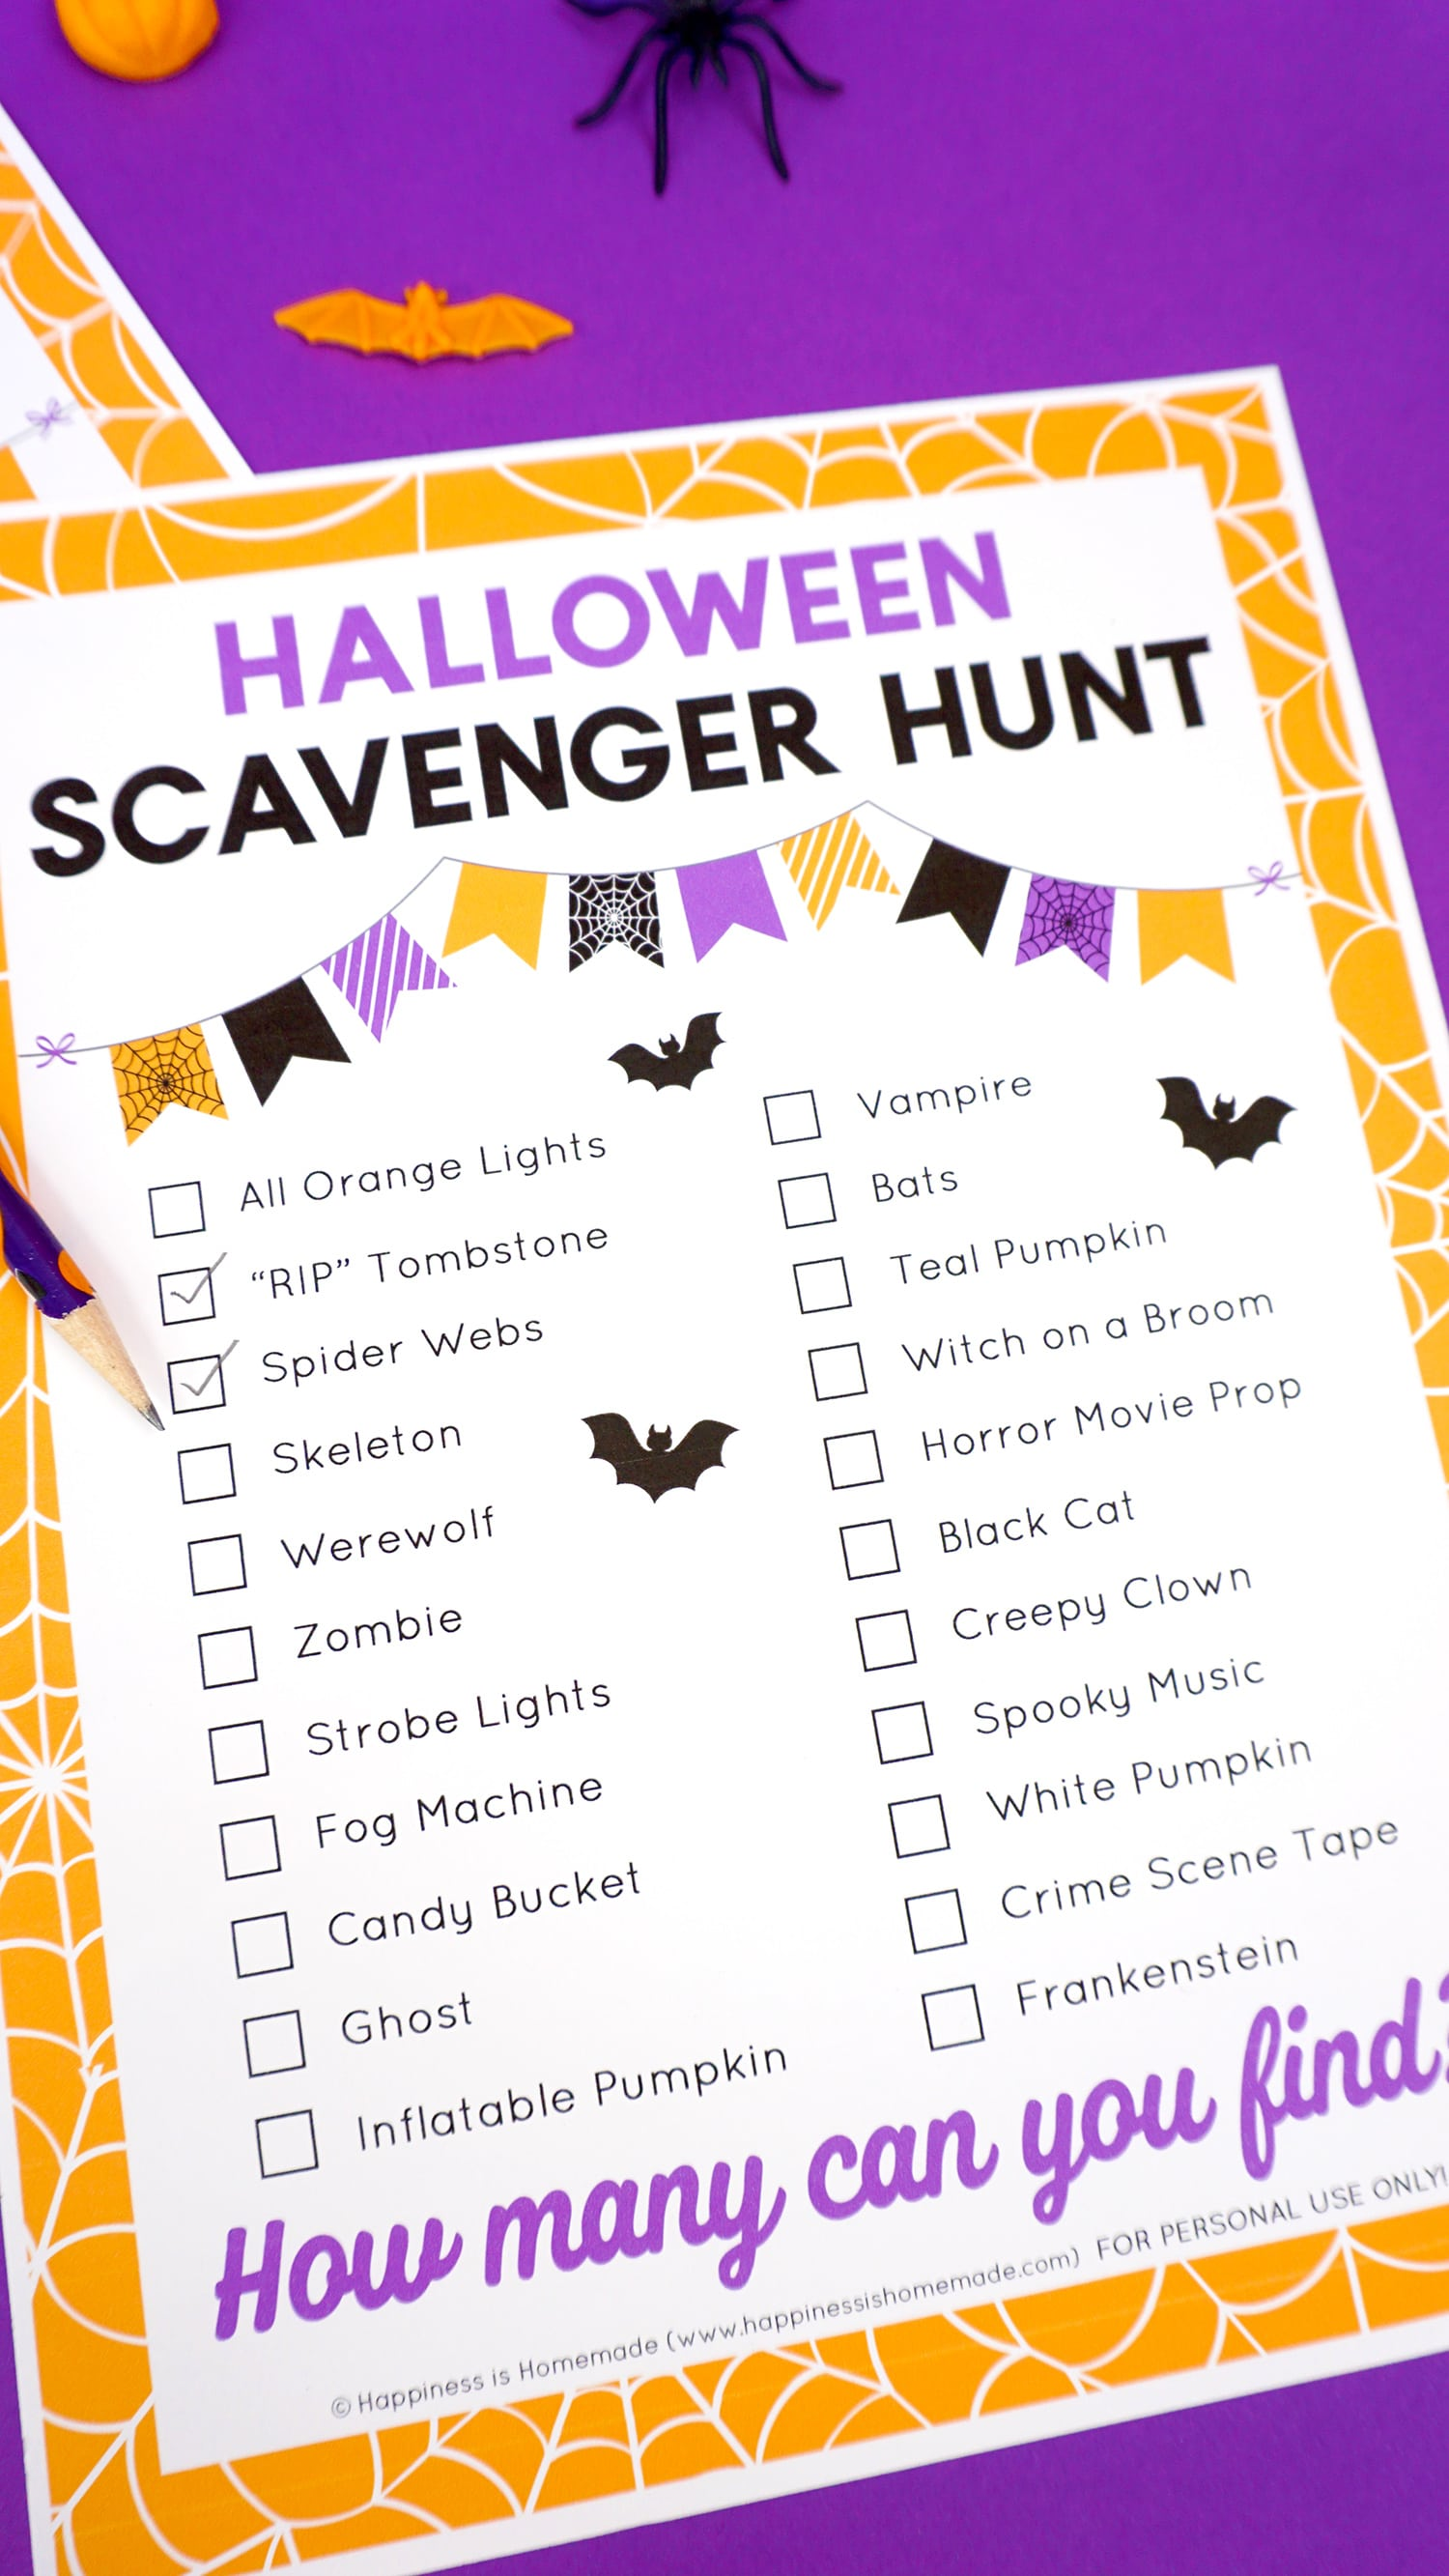 """Close up of Halloween scavenger hunt printable checklist with """"Spider Webs"""" and """"RIP Tombstone"""" checked off"""